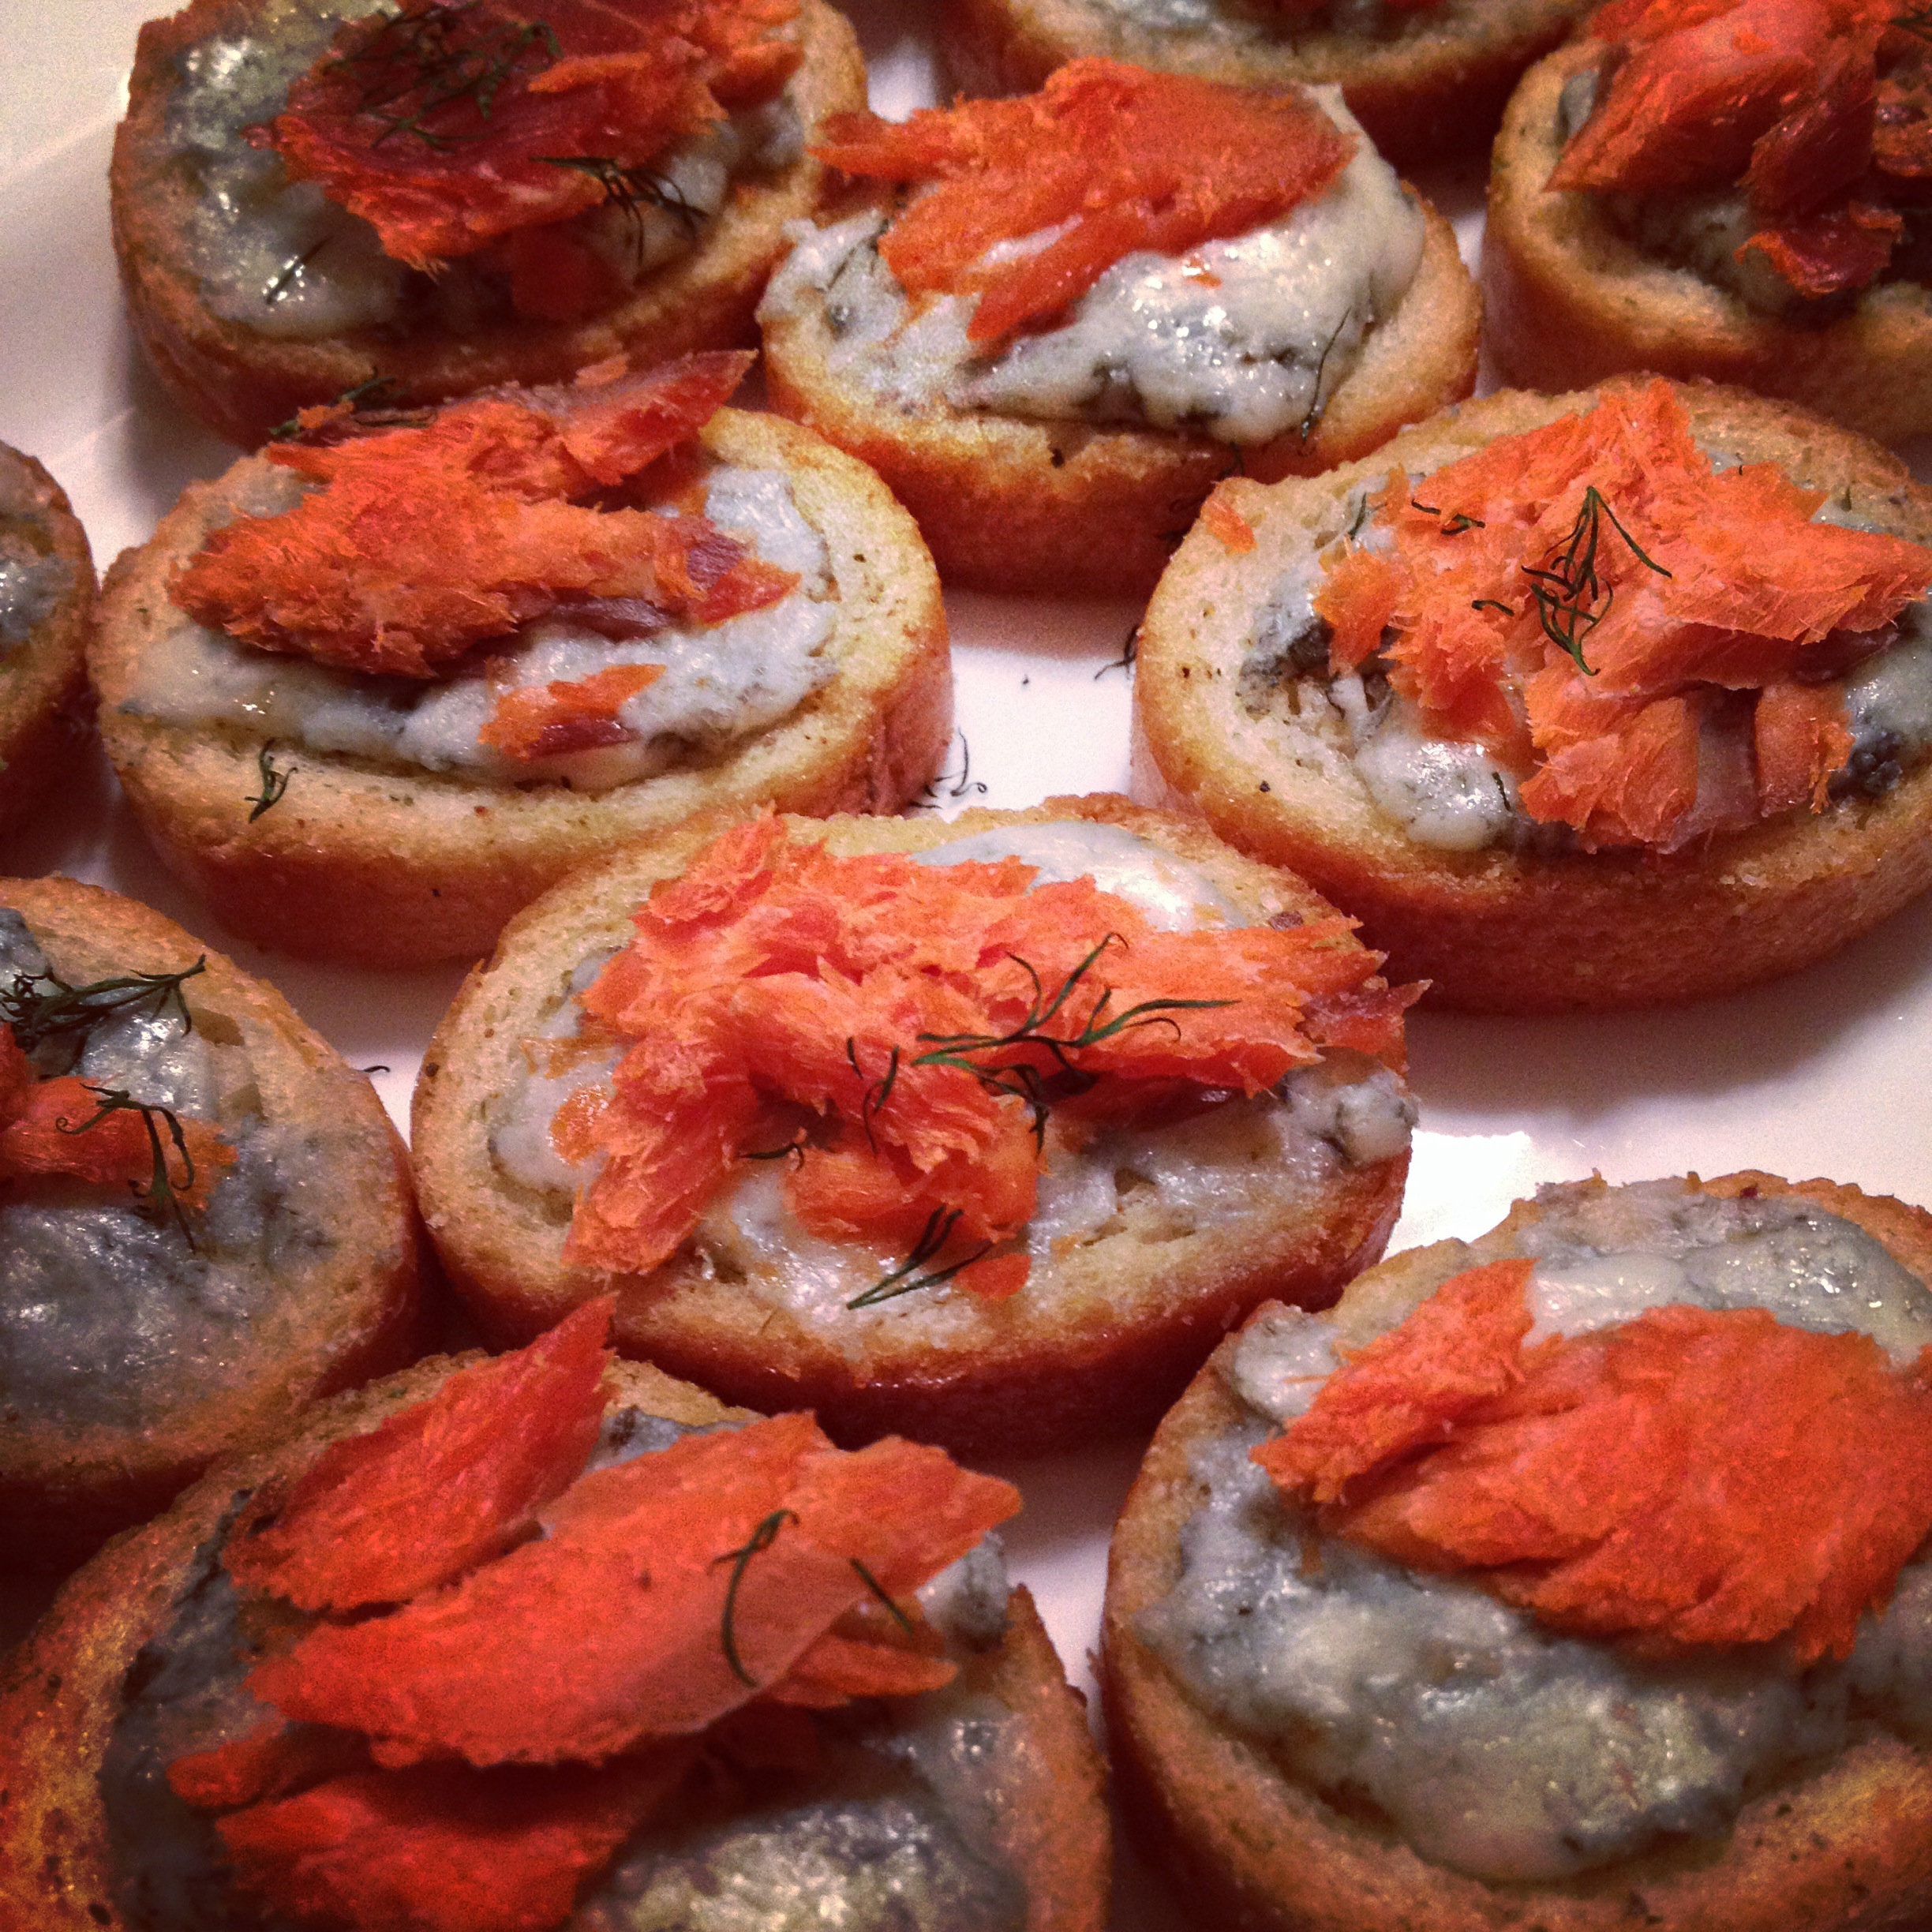 ... smoked salmon and goat cheese smoked salmon and goat cheese toasts